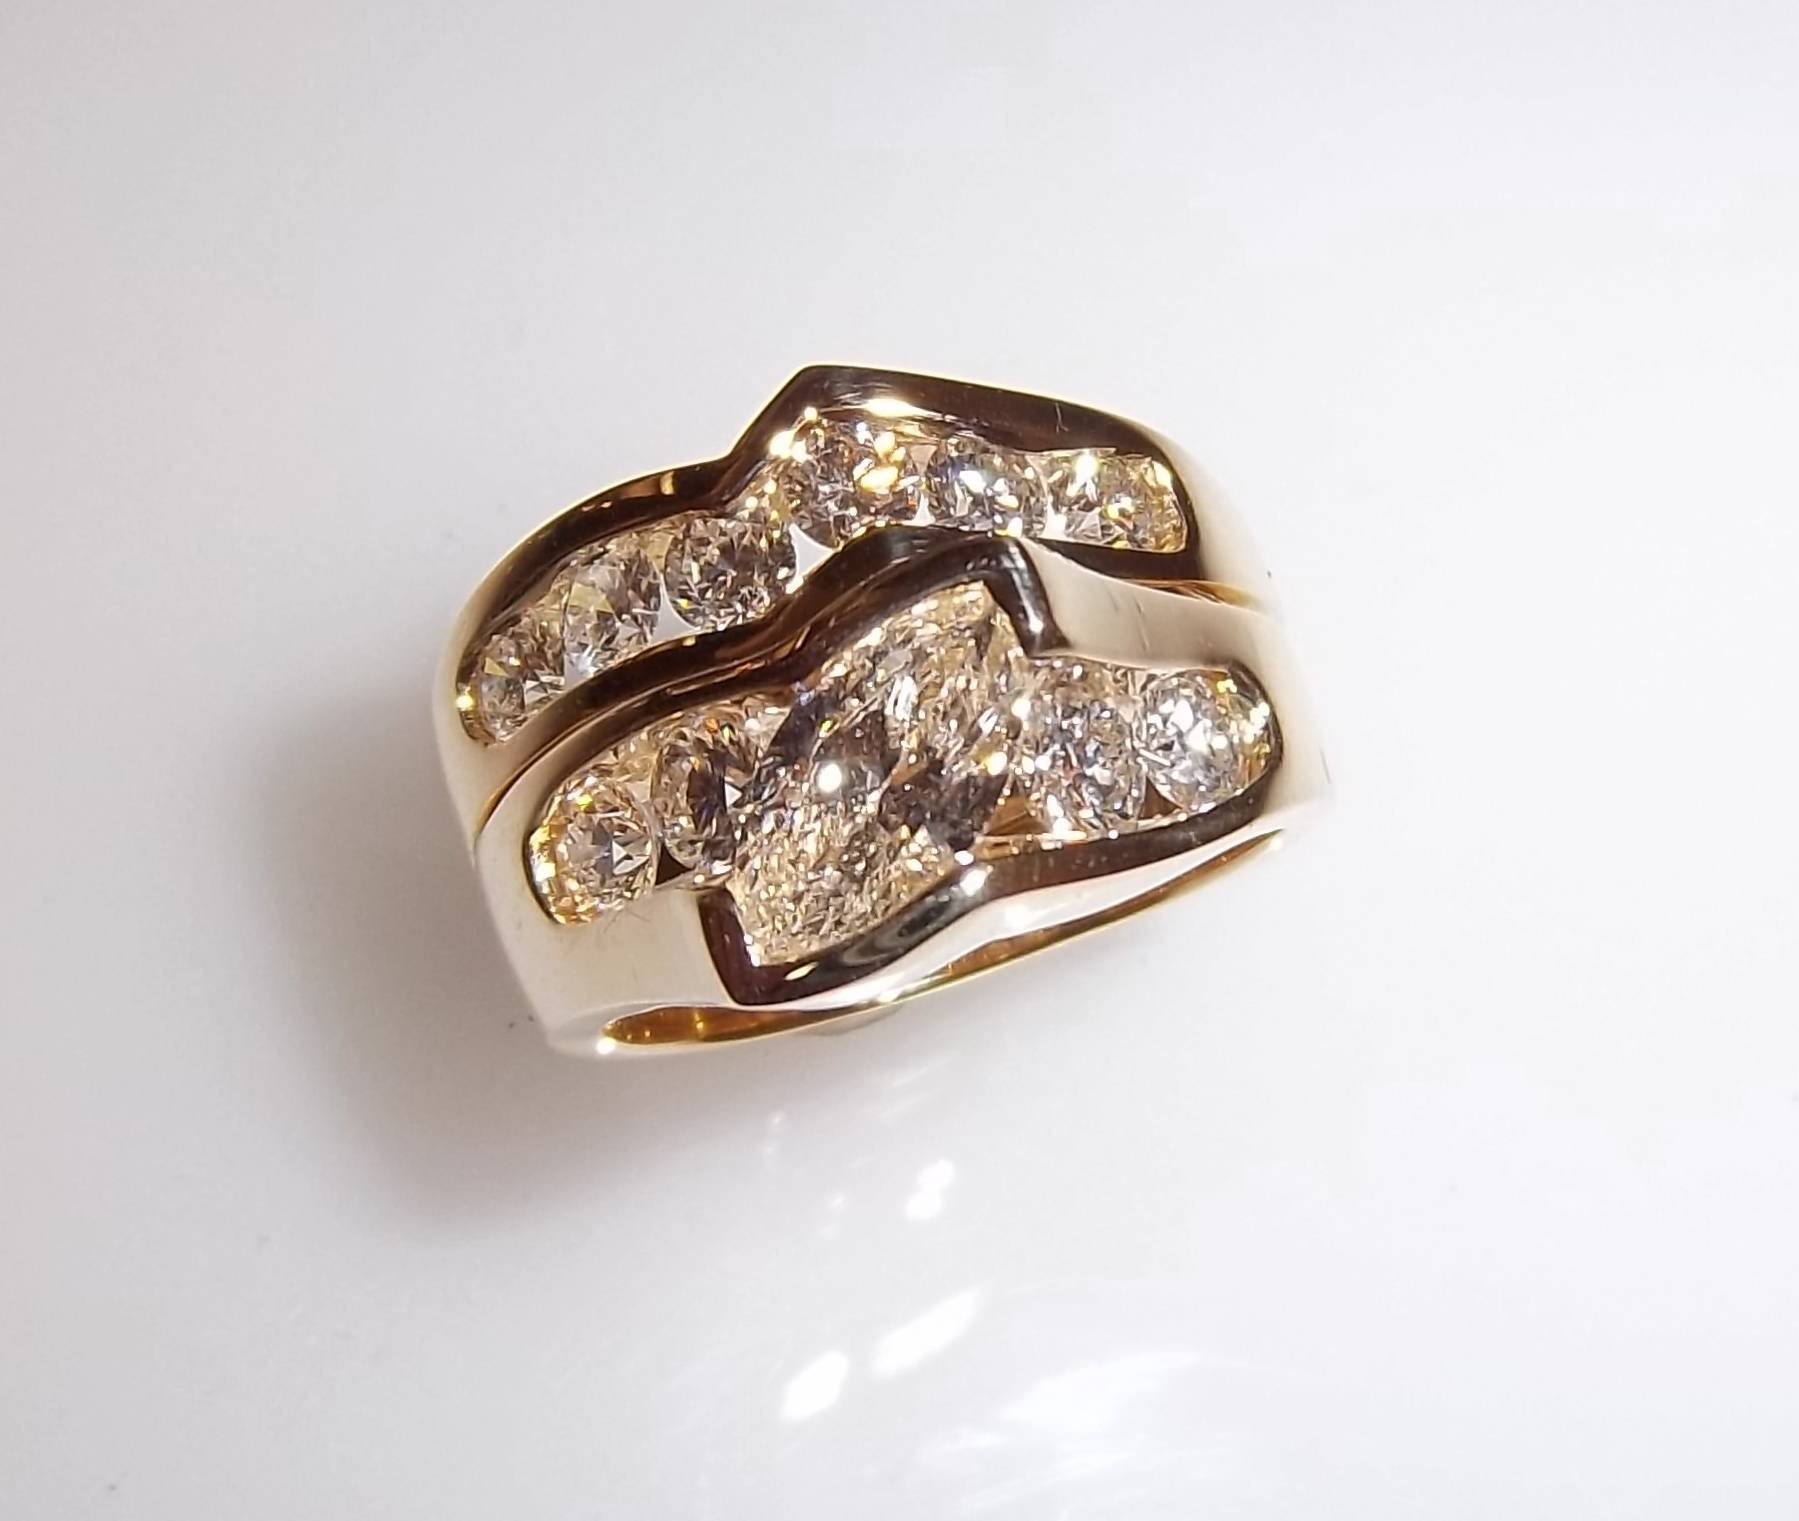 Wedding Anniversary Rings For Her | Wedding Ideas Throughout Current Wedding Anniversary Rings (View 6 of 25)